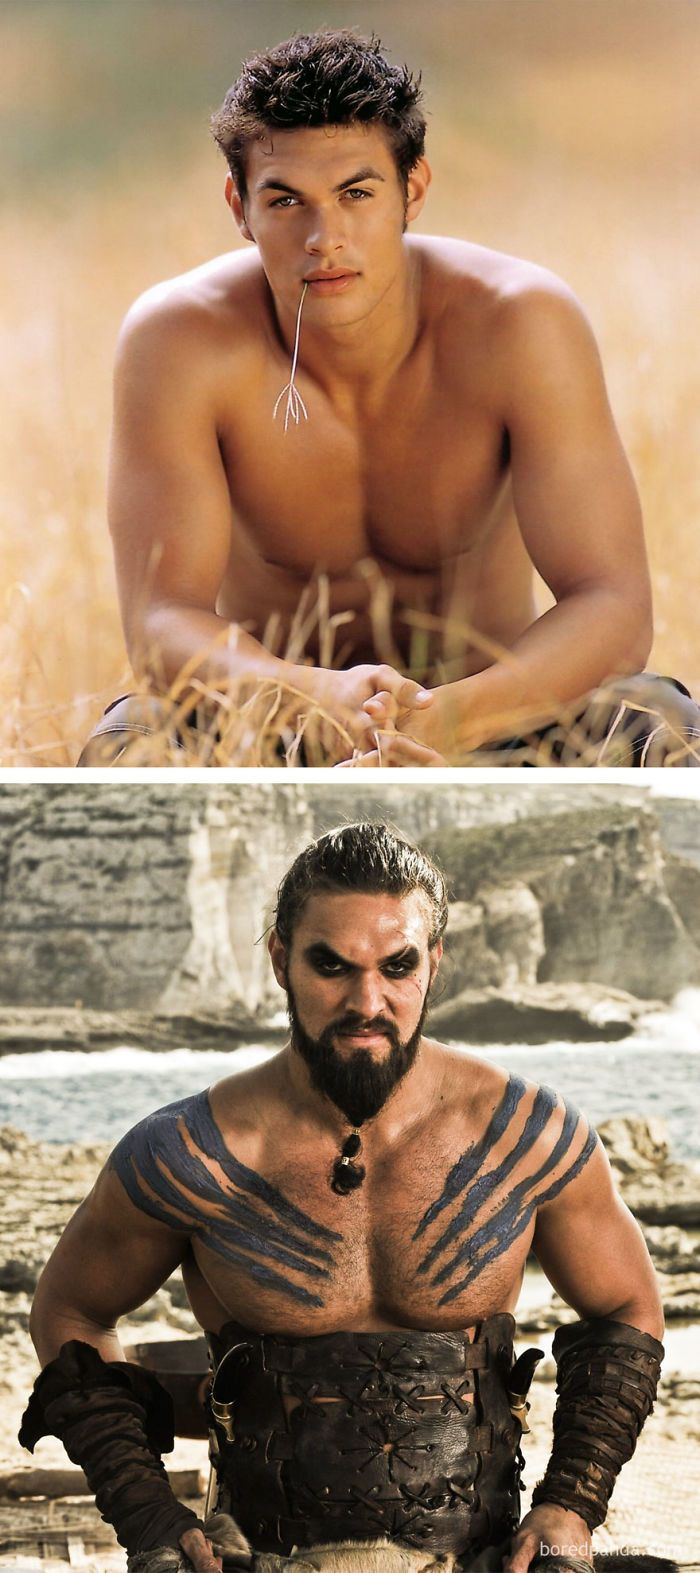 Jason Momoa As Jason (In 2003's Baywatch) And As Khal Drogo (In GoT) | Bored Panda